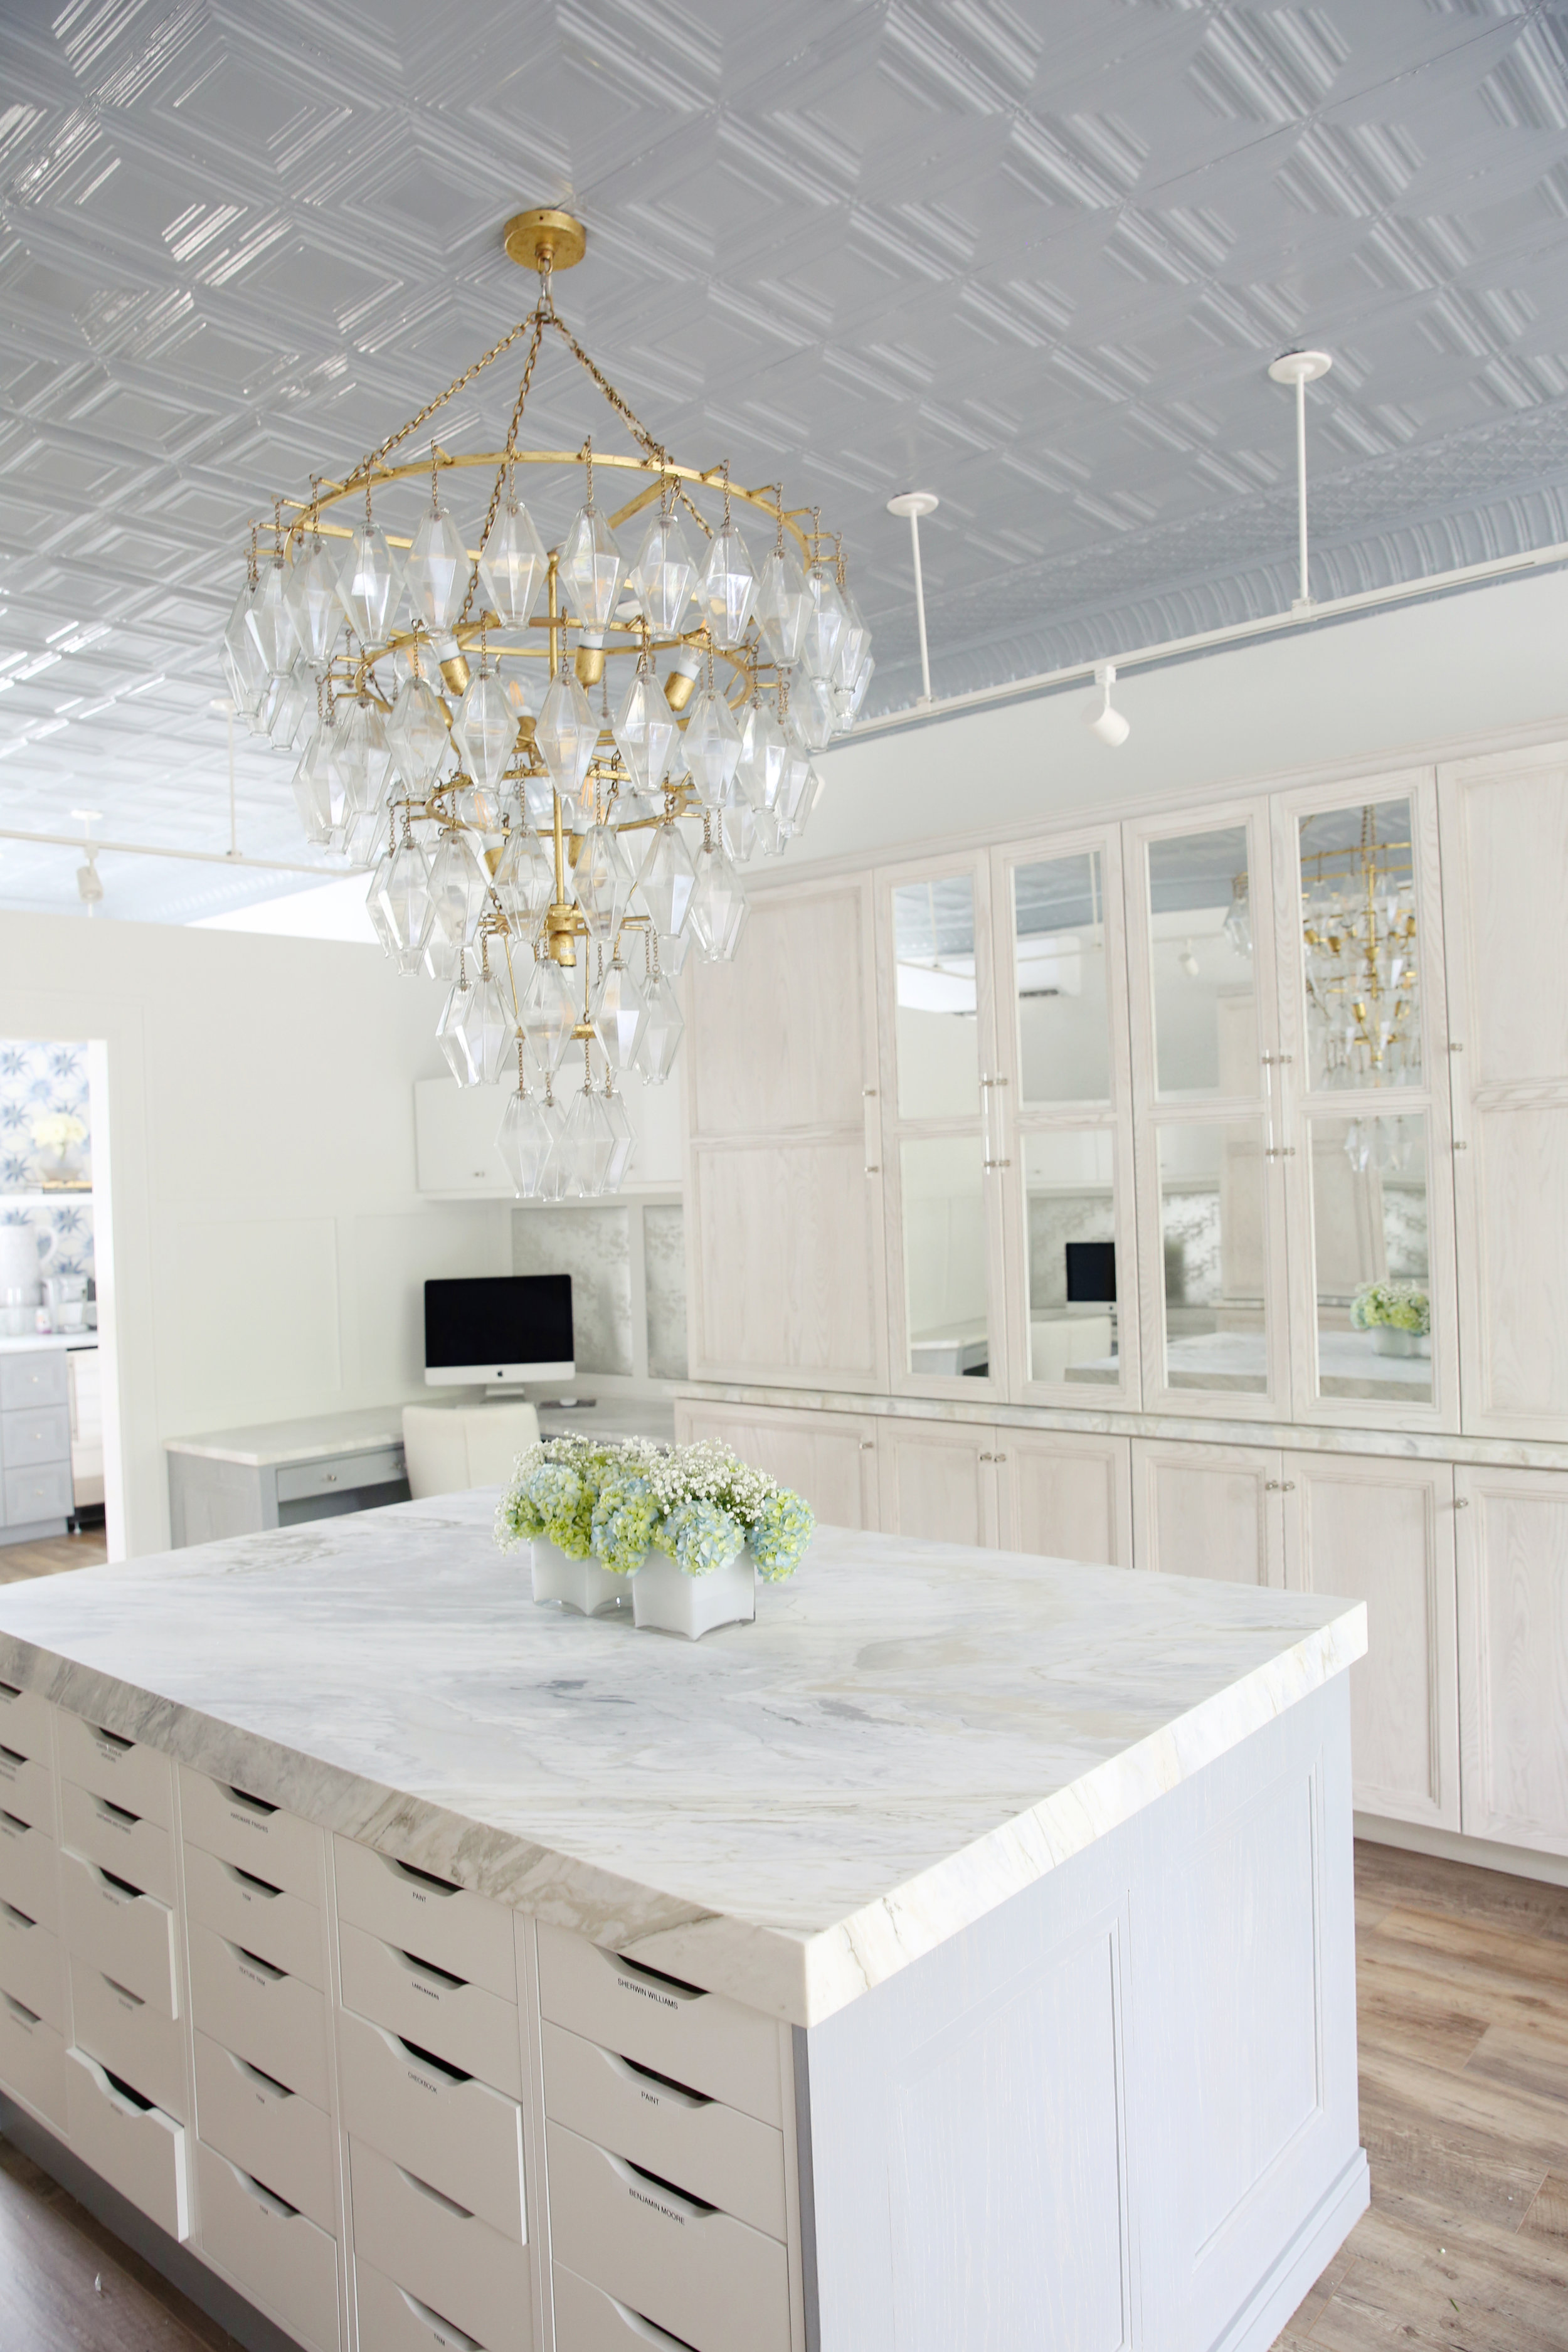 NYC and NJ based lifestyle interior design photographer Jennifer Lavelle Photography -  interiors, exteriors, construction lifestyle photographer.  Karen Wolf Interiors photographer in Short Hills, NJ